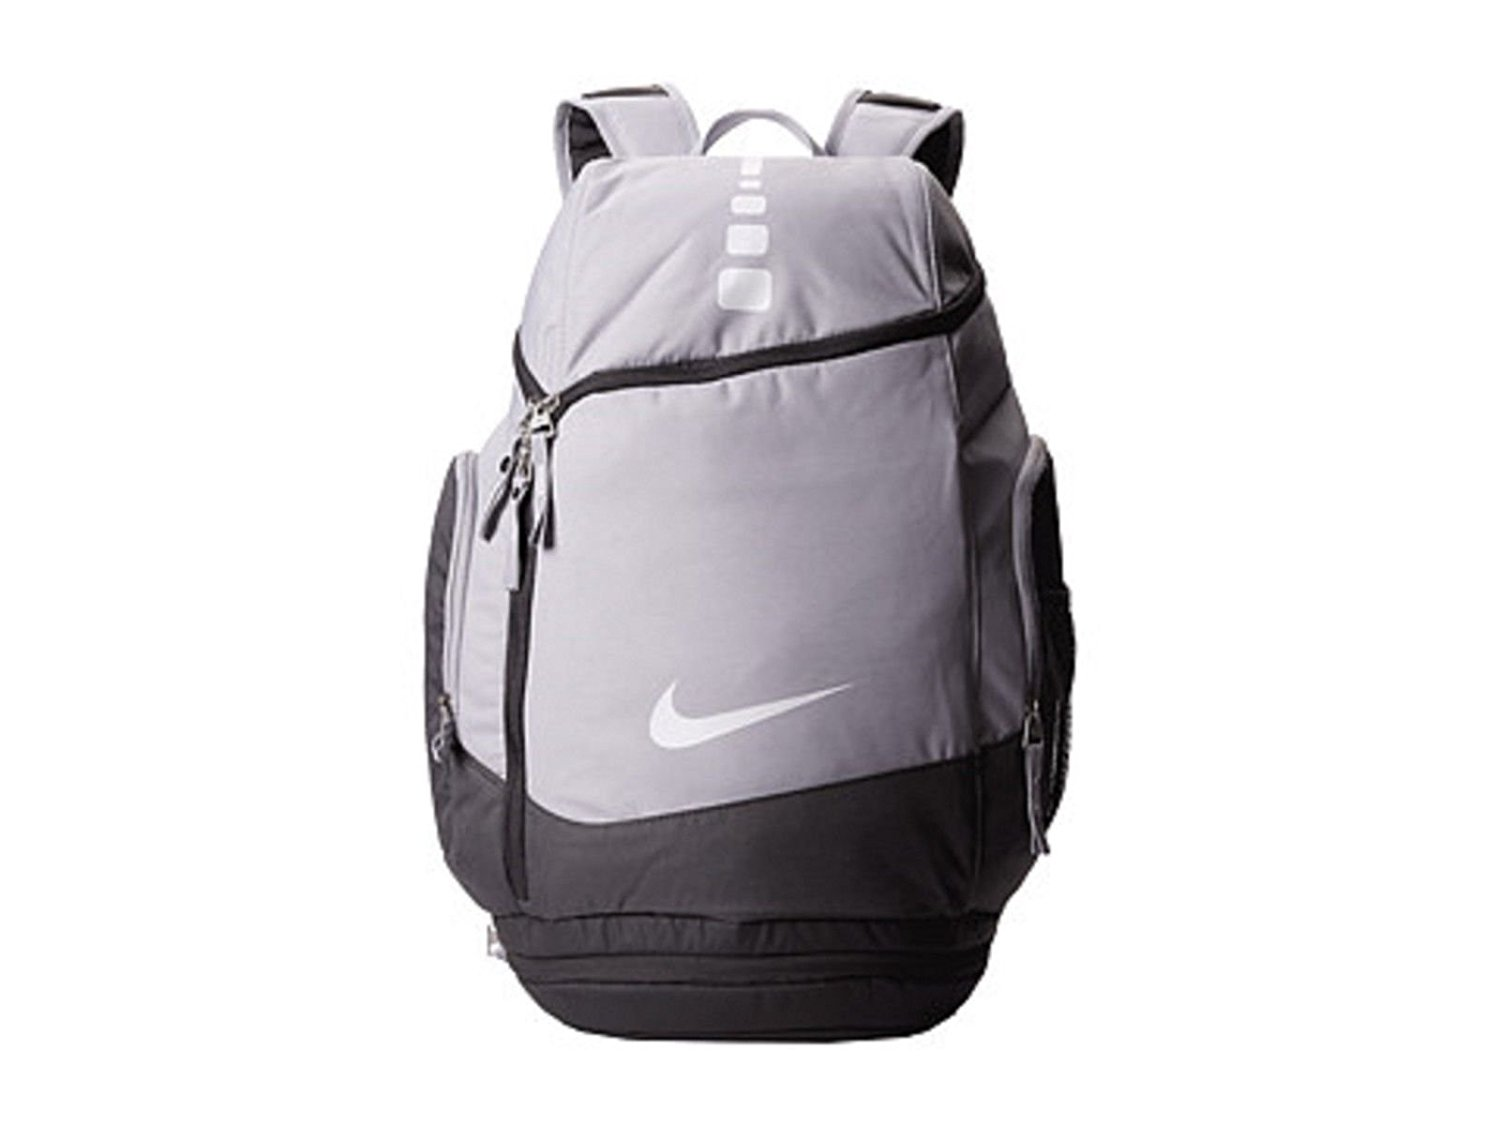 a04cfaea5830 Nike Hoops Elite Max Air Team Backpack Charcoal Dark Grey White BA4880-012